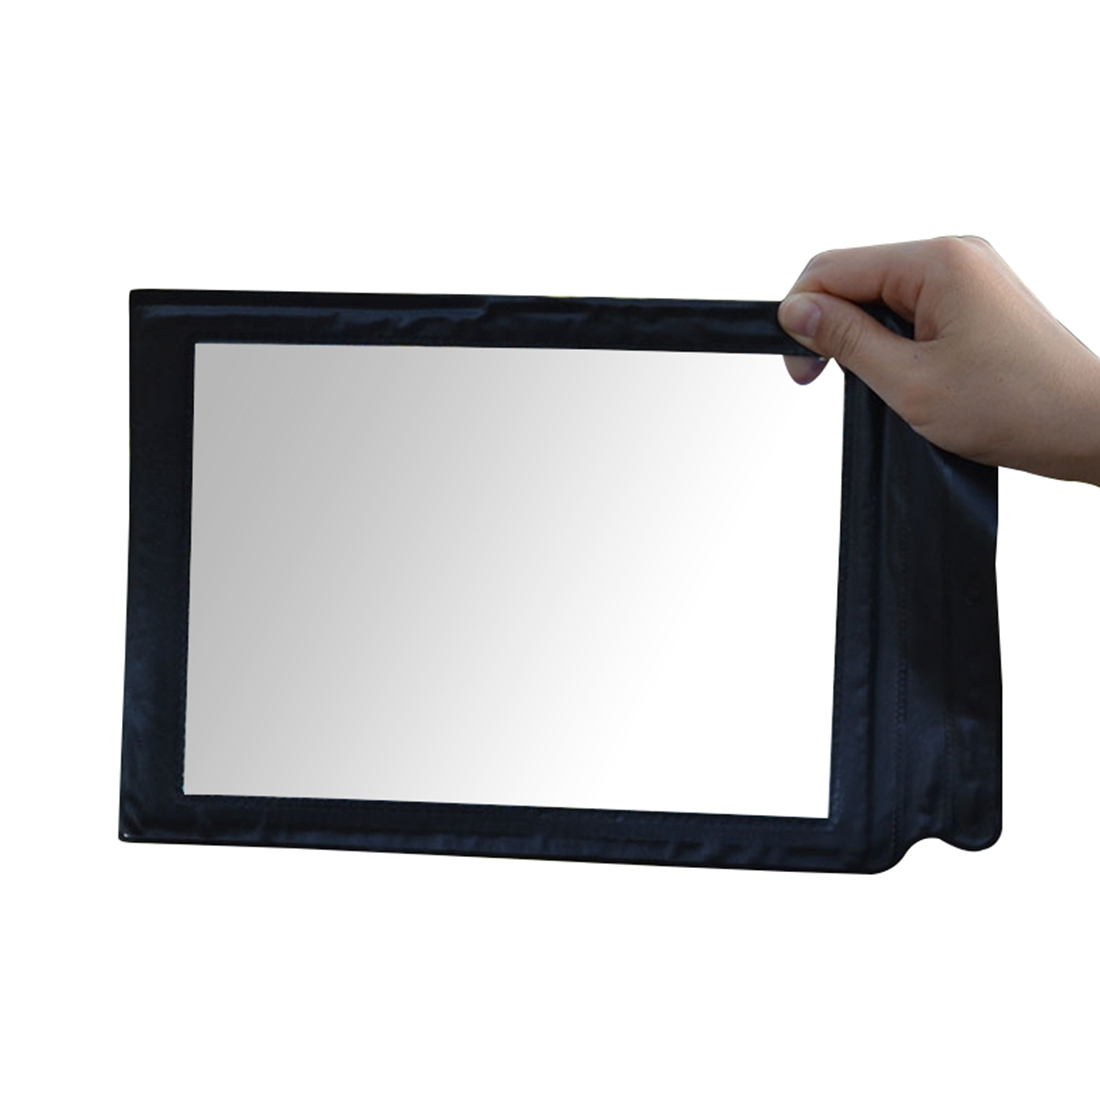 NFLC-A4 Full Page 3x Magnifier Sheet Large Magnifying Glass Book Reading Aid Lens full page magnifying sheet fresnel lens 3x magnification pvc magnifier